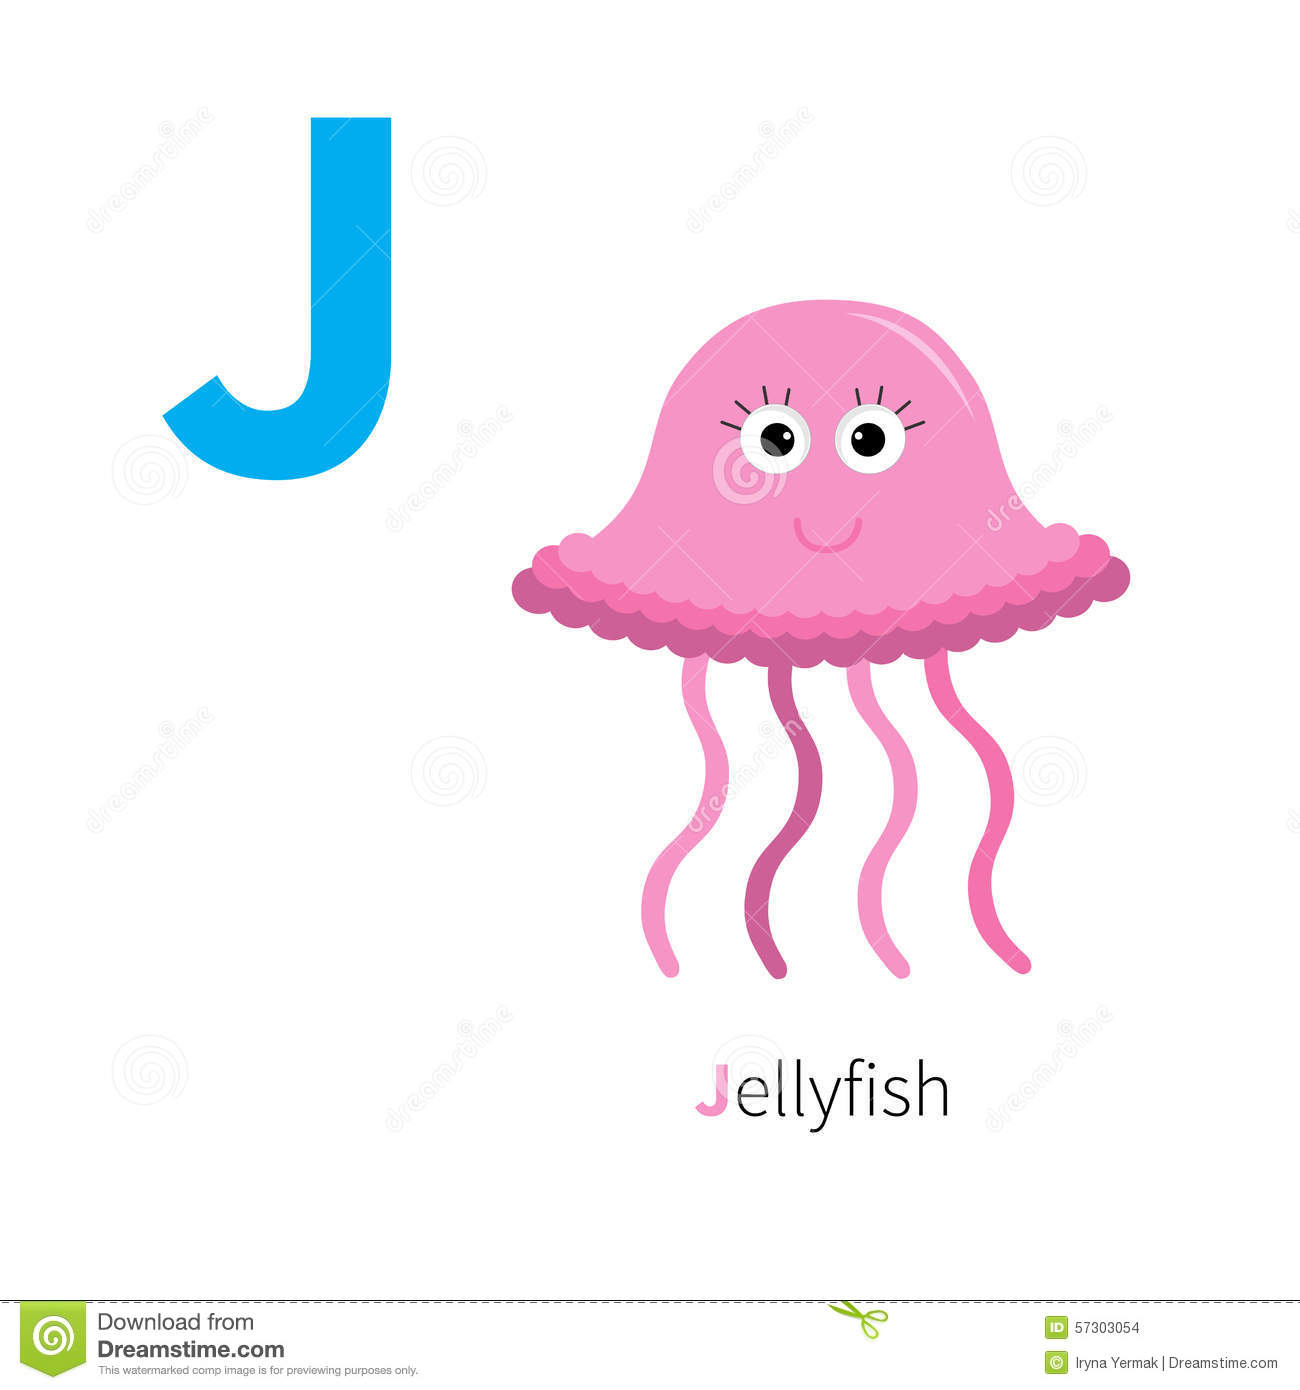 Letter J Jellyfish Zoo Alphabet English Abc With Animals